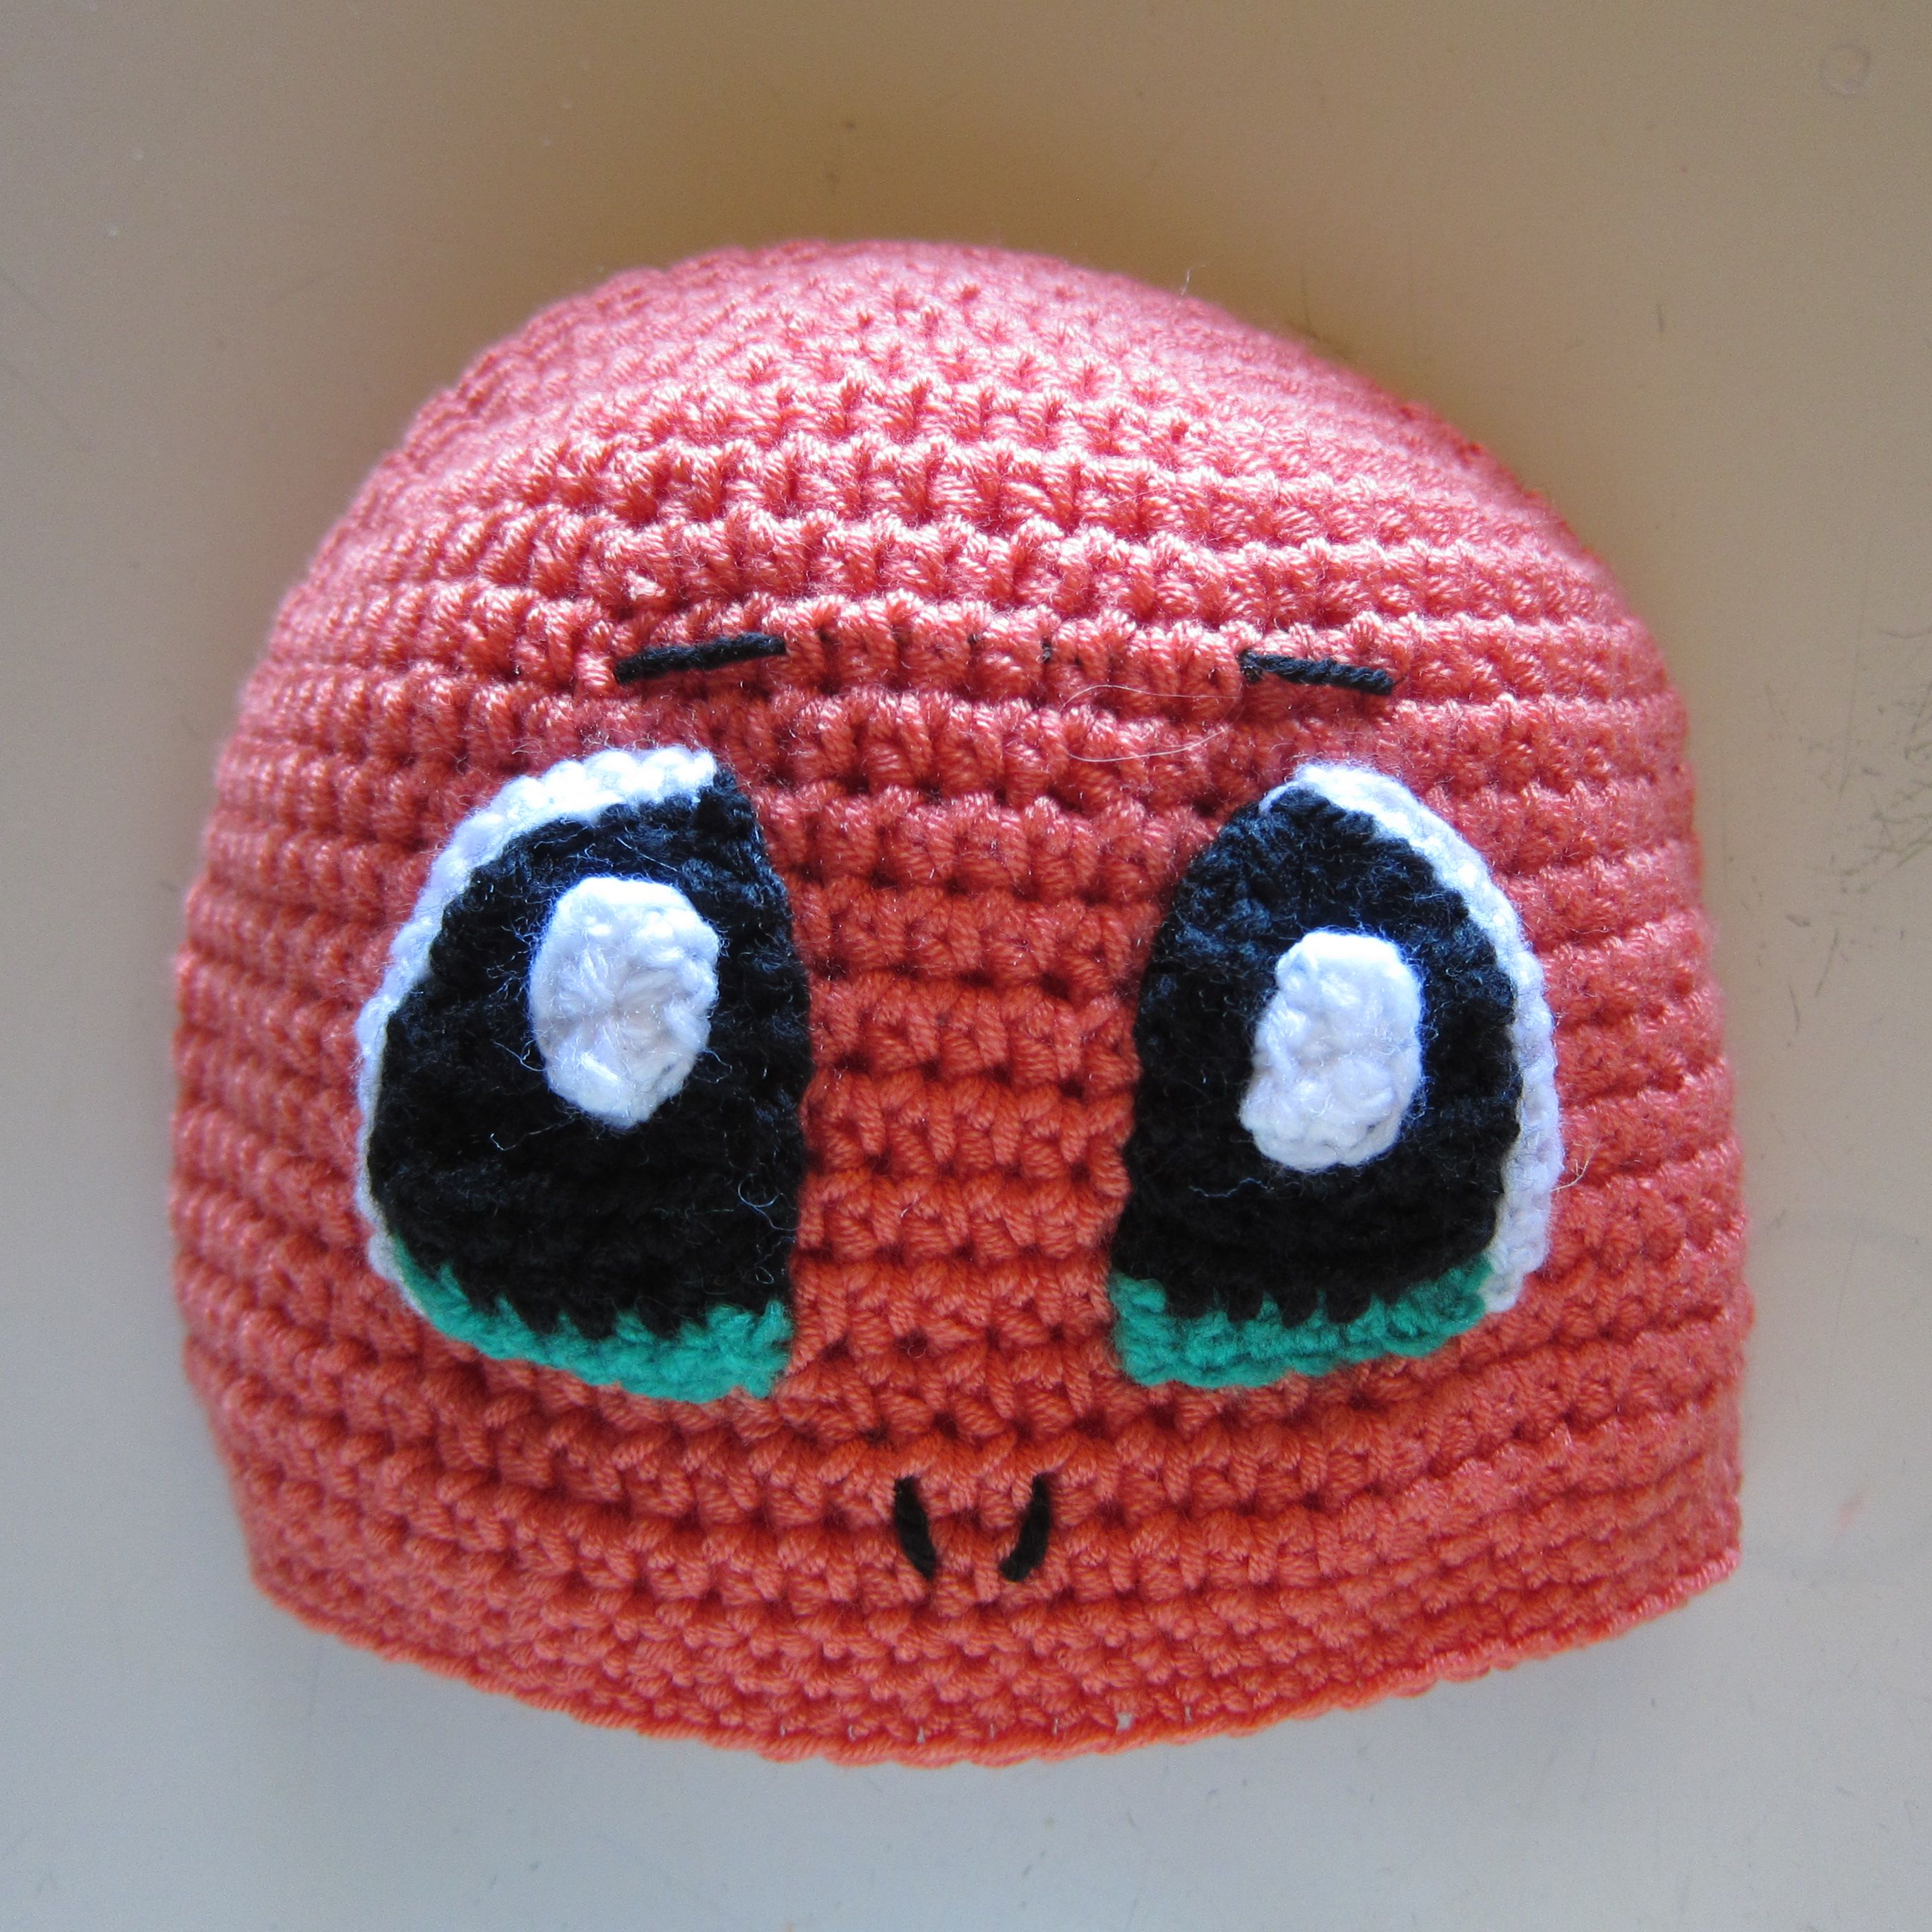 Crocheted Charmander Hat Pokémon Character No Pattern Stuff